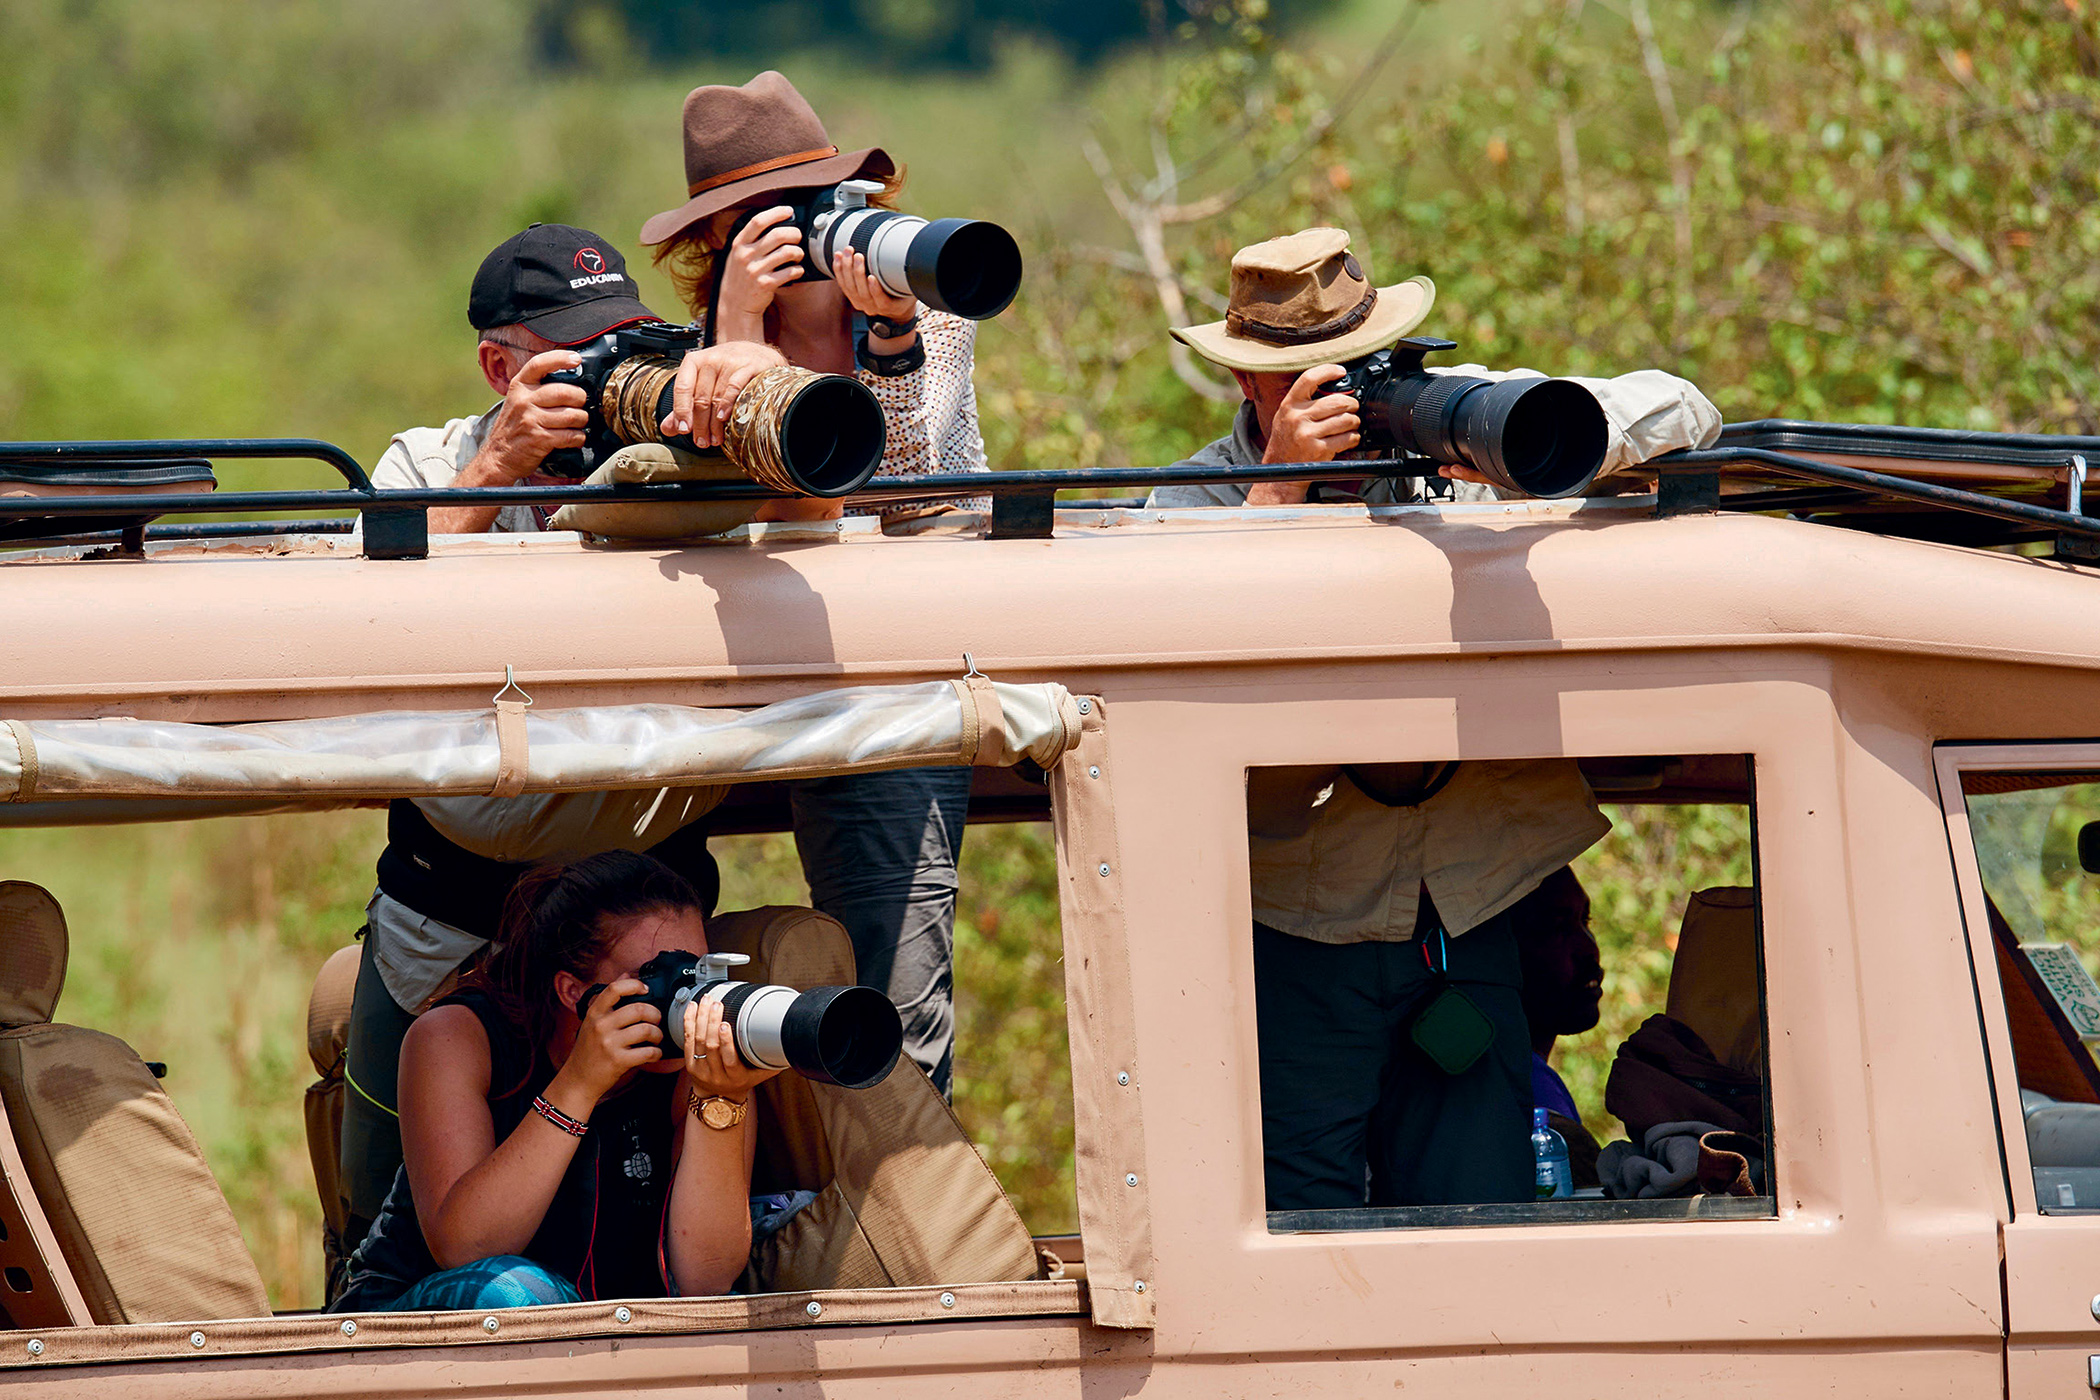 Tourists and photographers zoom in on wildlife at the Mara river during the great wildebeest migration, Maasai Mara National Reserve, Kenya.